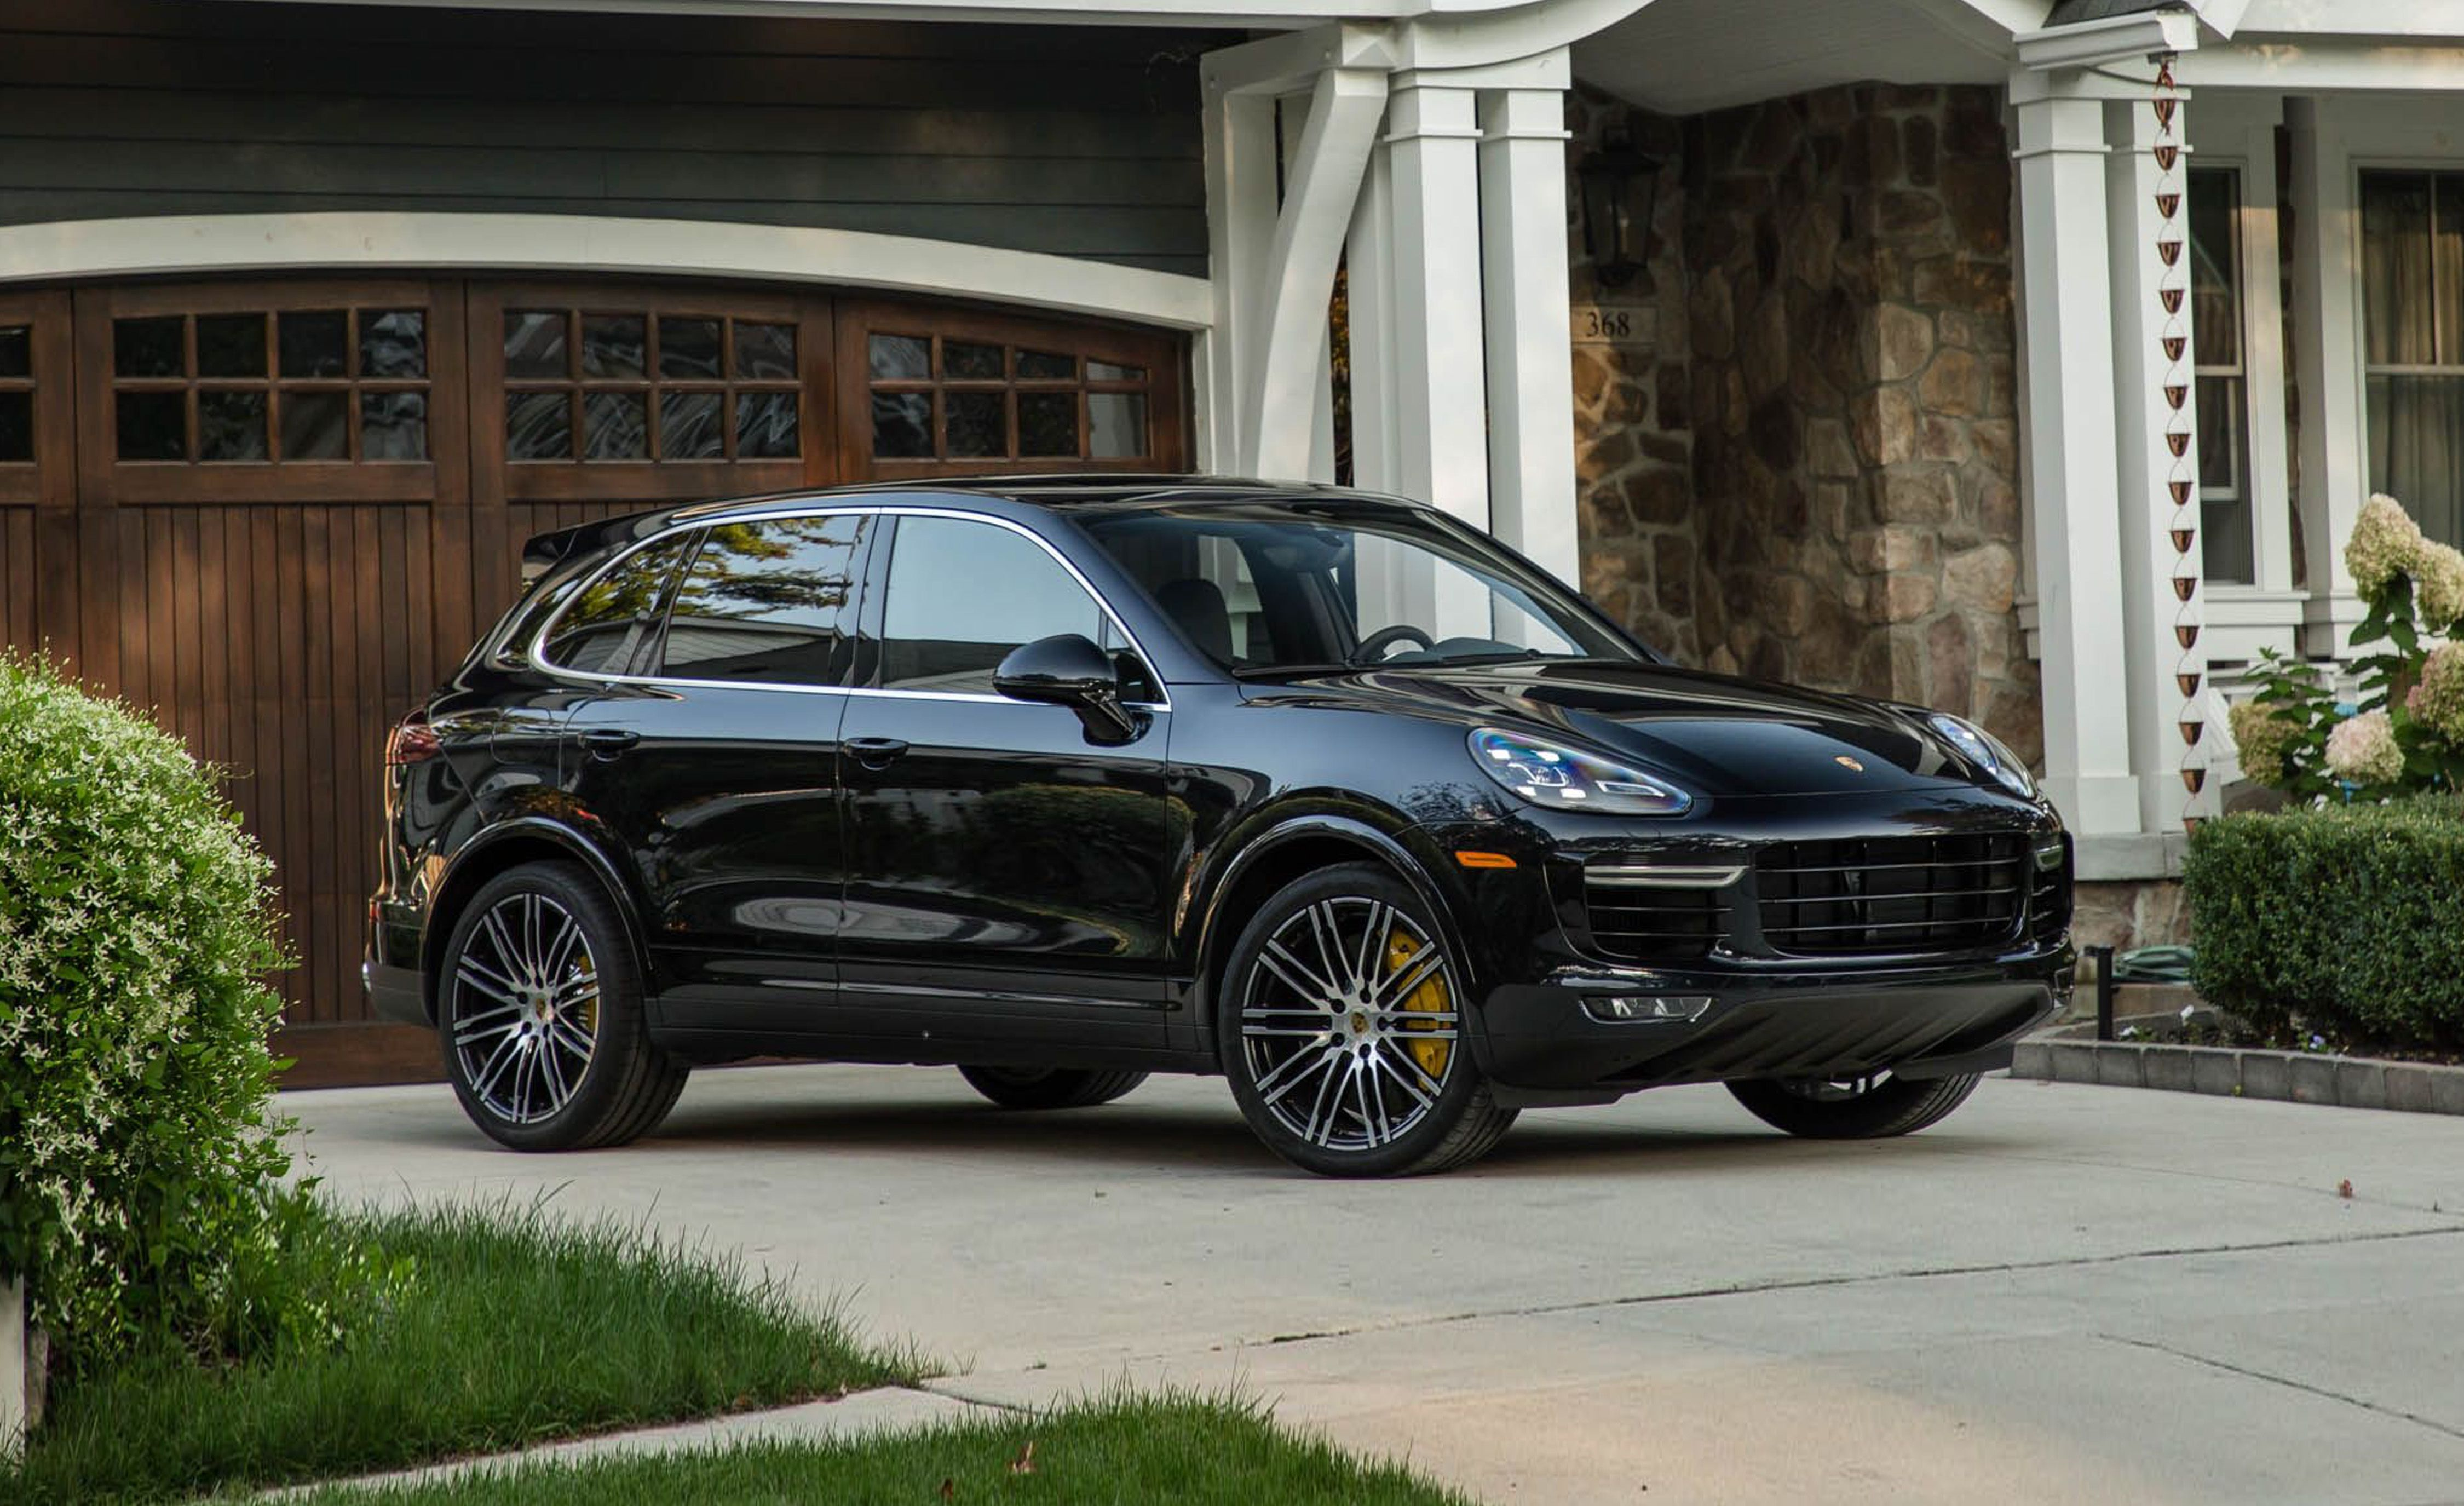 2019 Porsche Cayenne Turbo S Reviews Price Photos And Specs Car Driver